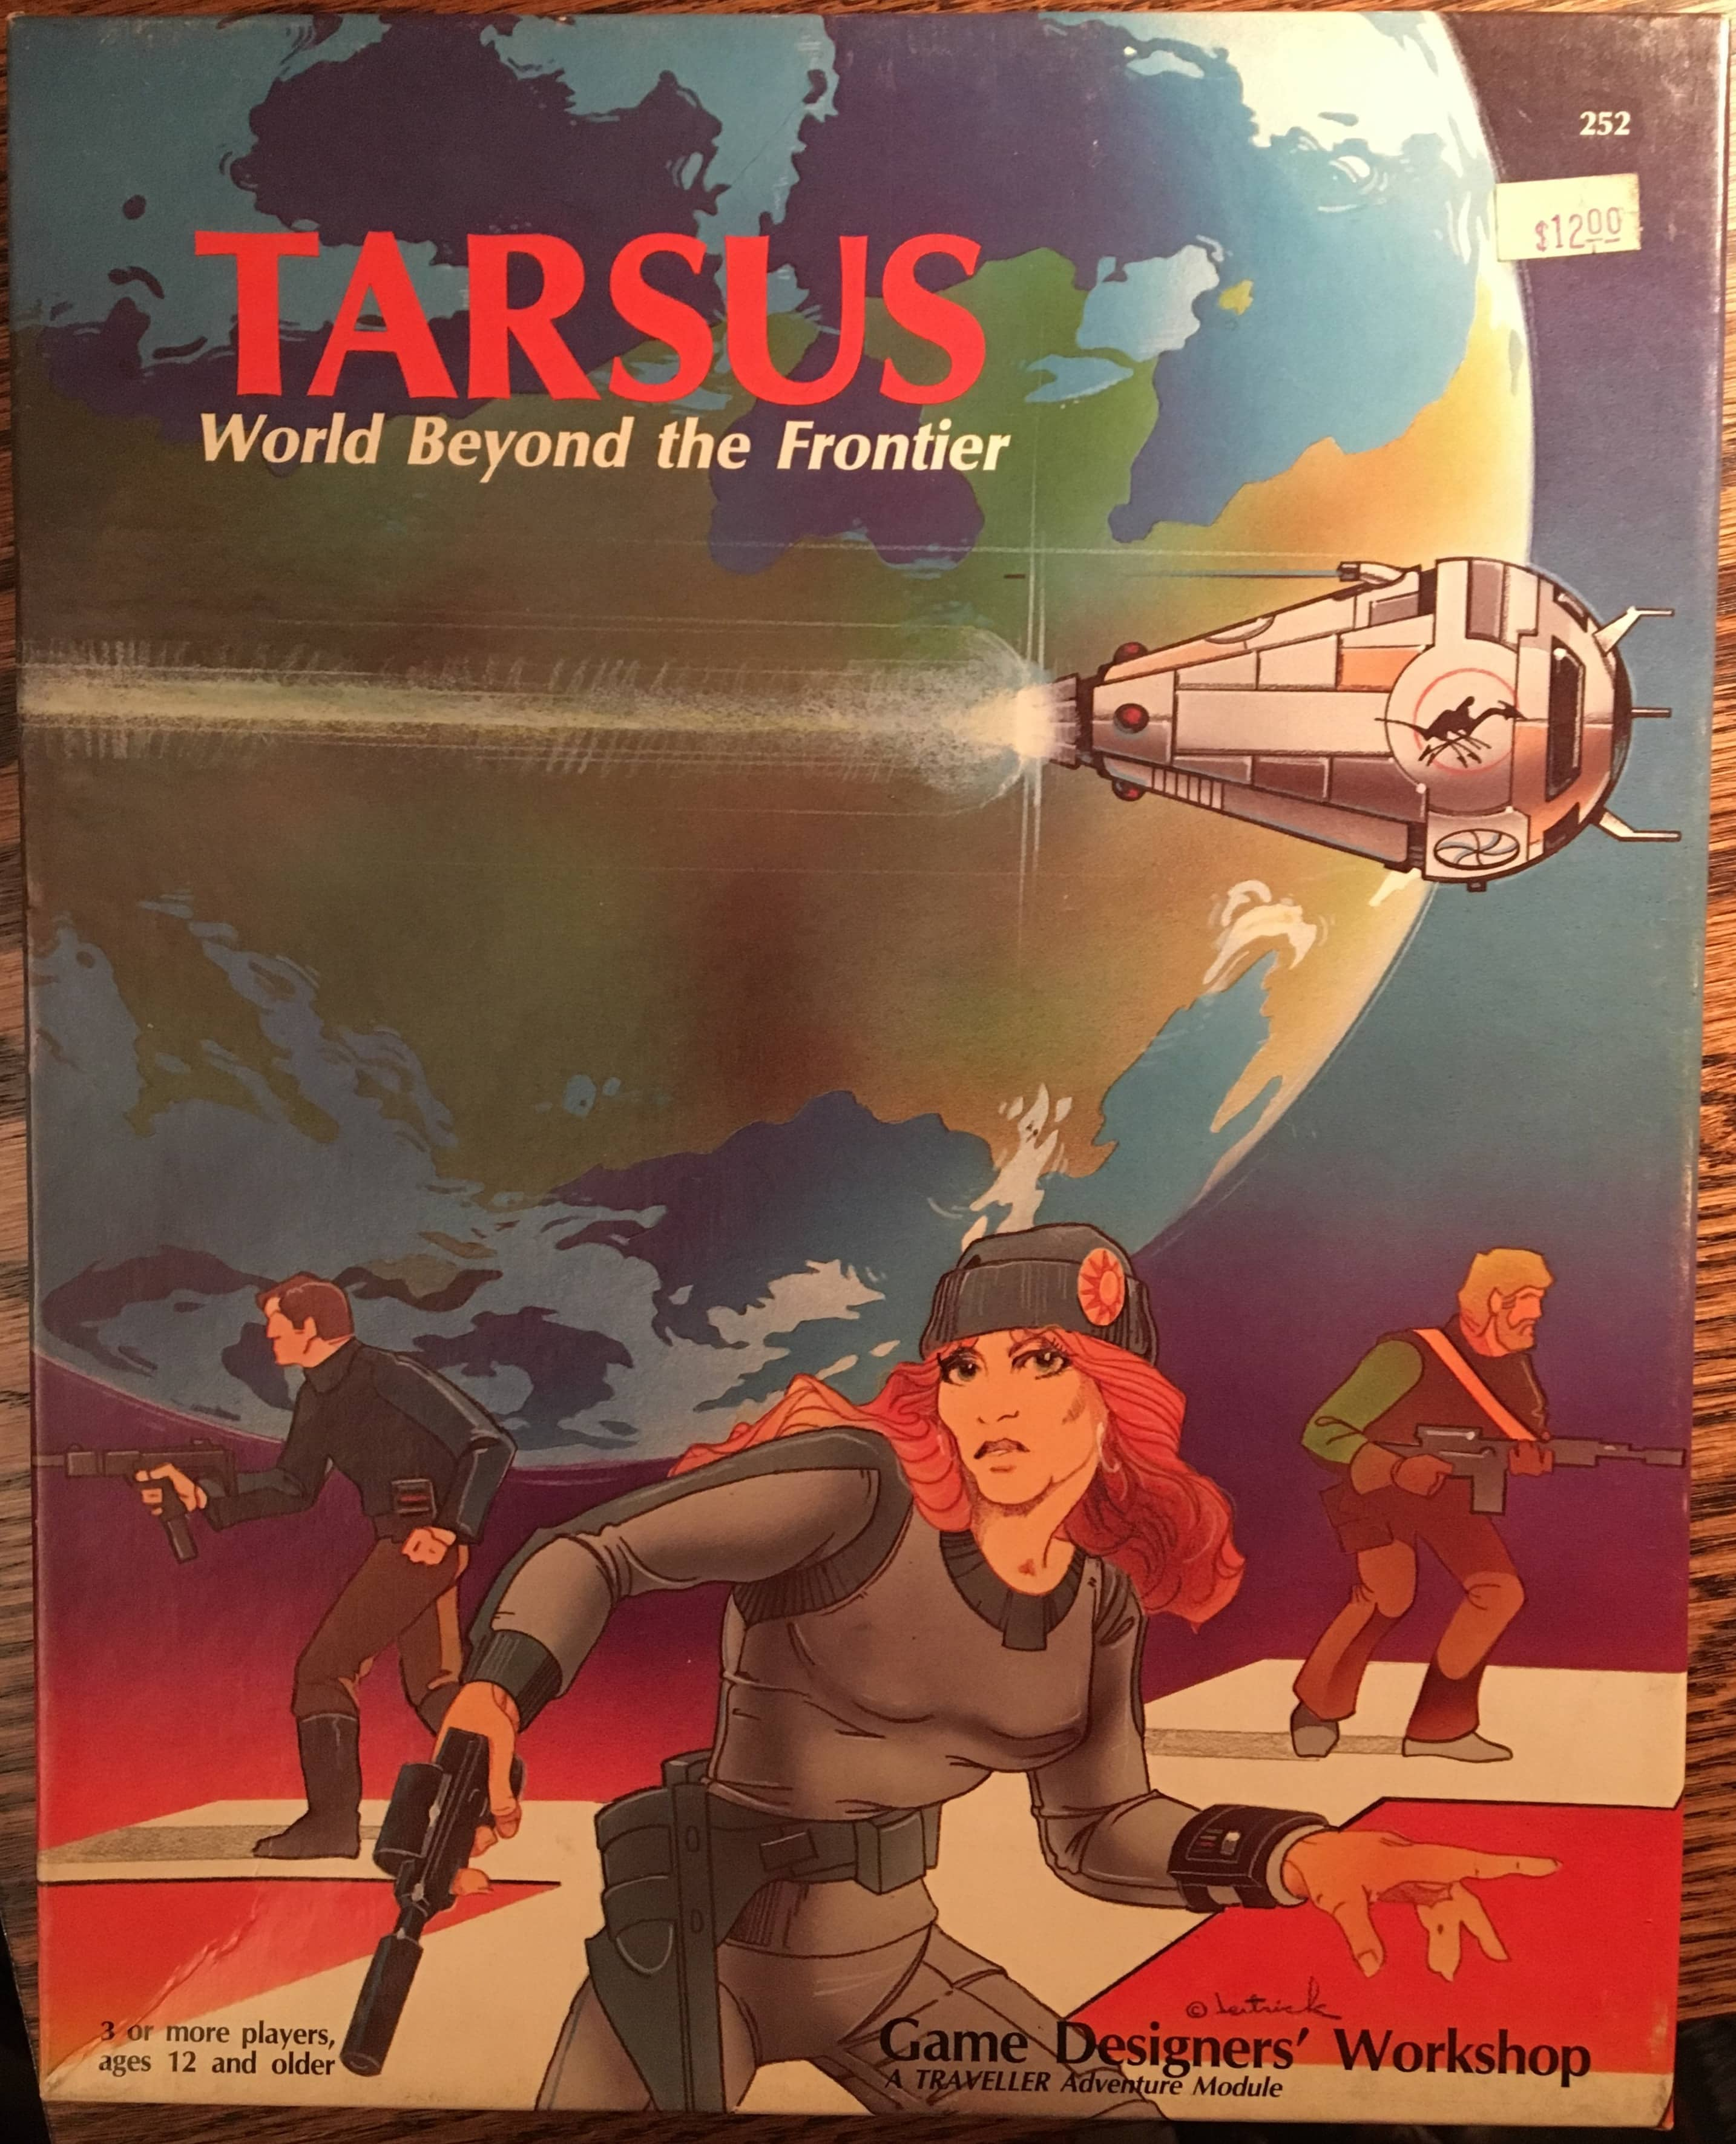 Image - Tarsus: World Beyond the Frontier